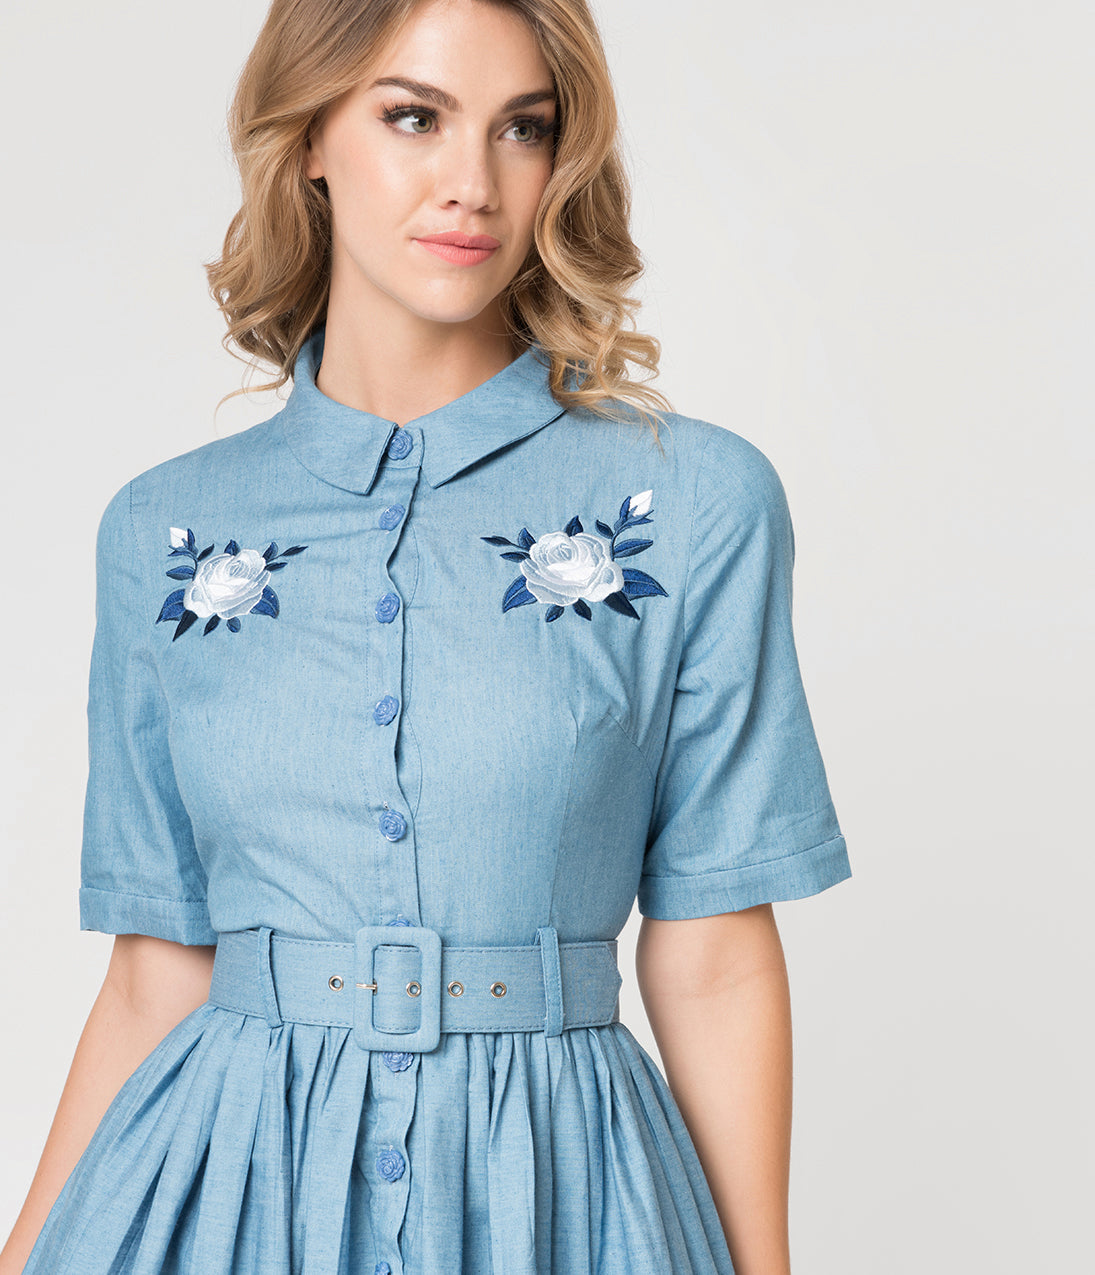 1950s Housewife Dress | 50s Day Dresses Collectif 1950S Style Denim Blue Western Rose Aria Shirtdress $92.00 AT vintagedancer.com